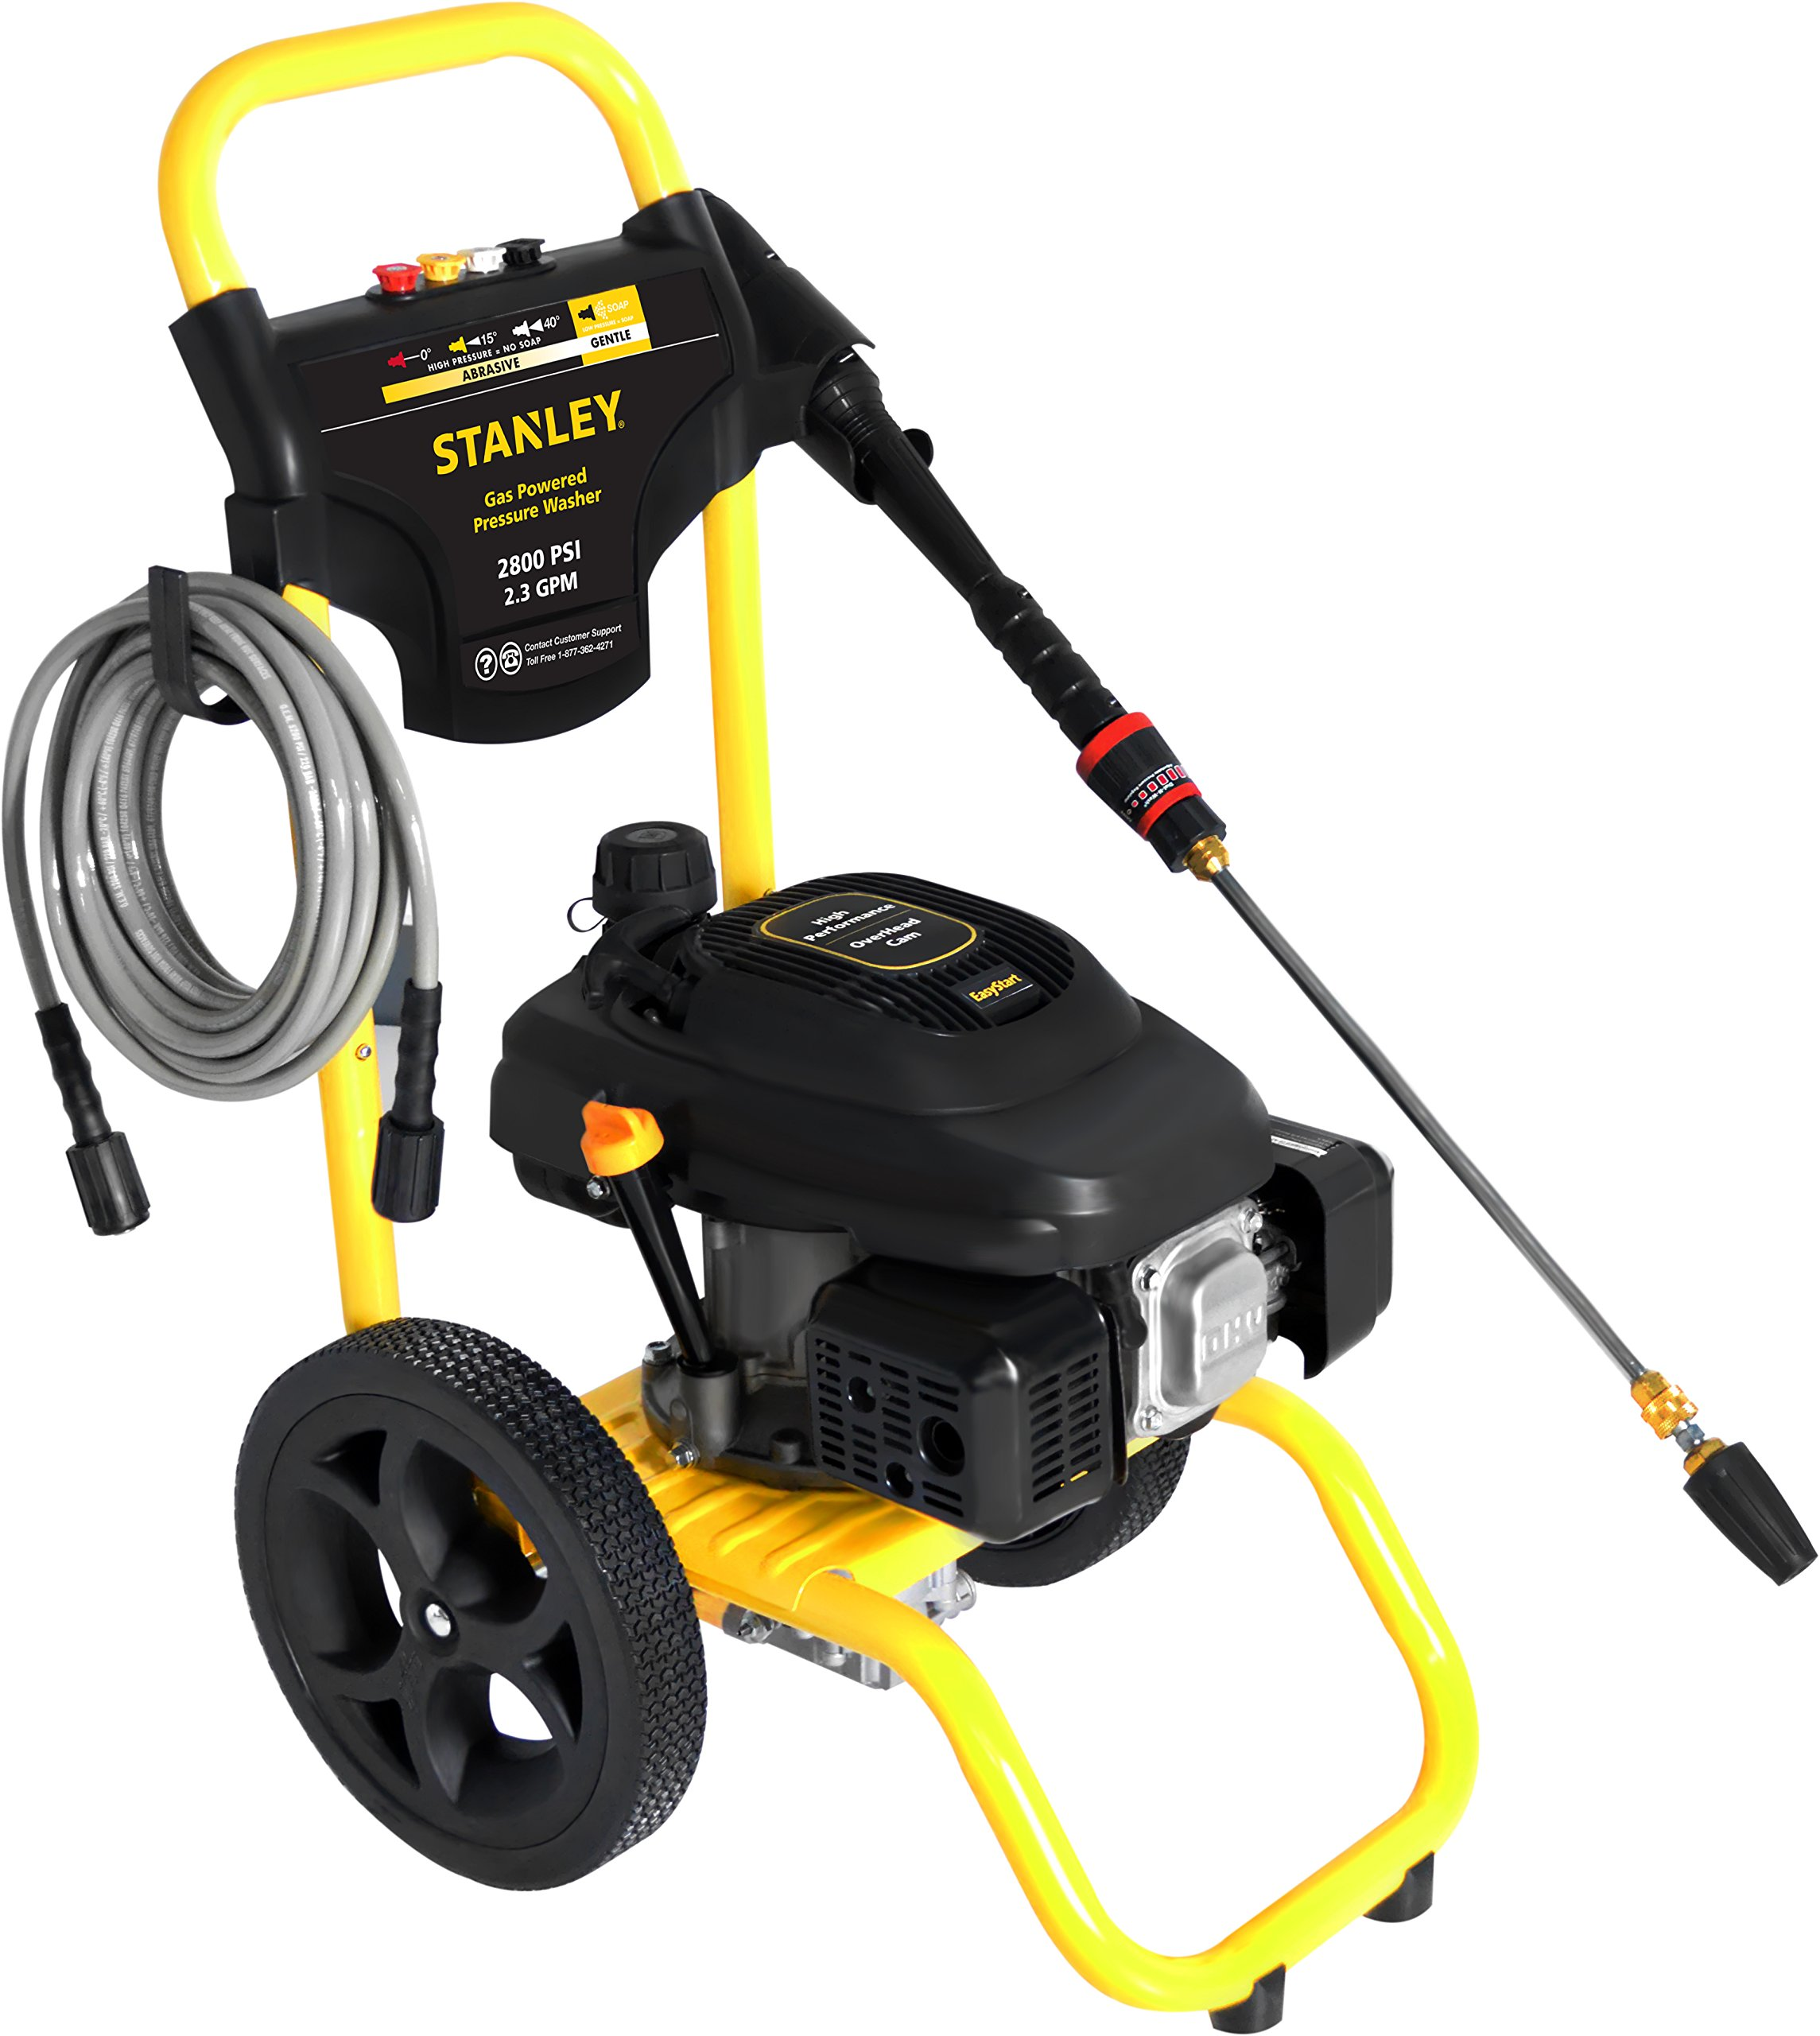 STANLEY SXPW2823 2800 PSI @ 2.3 GPM Gas Pressure Washer Powered by STANLEY (50-State) by Stanley (Image #4)